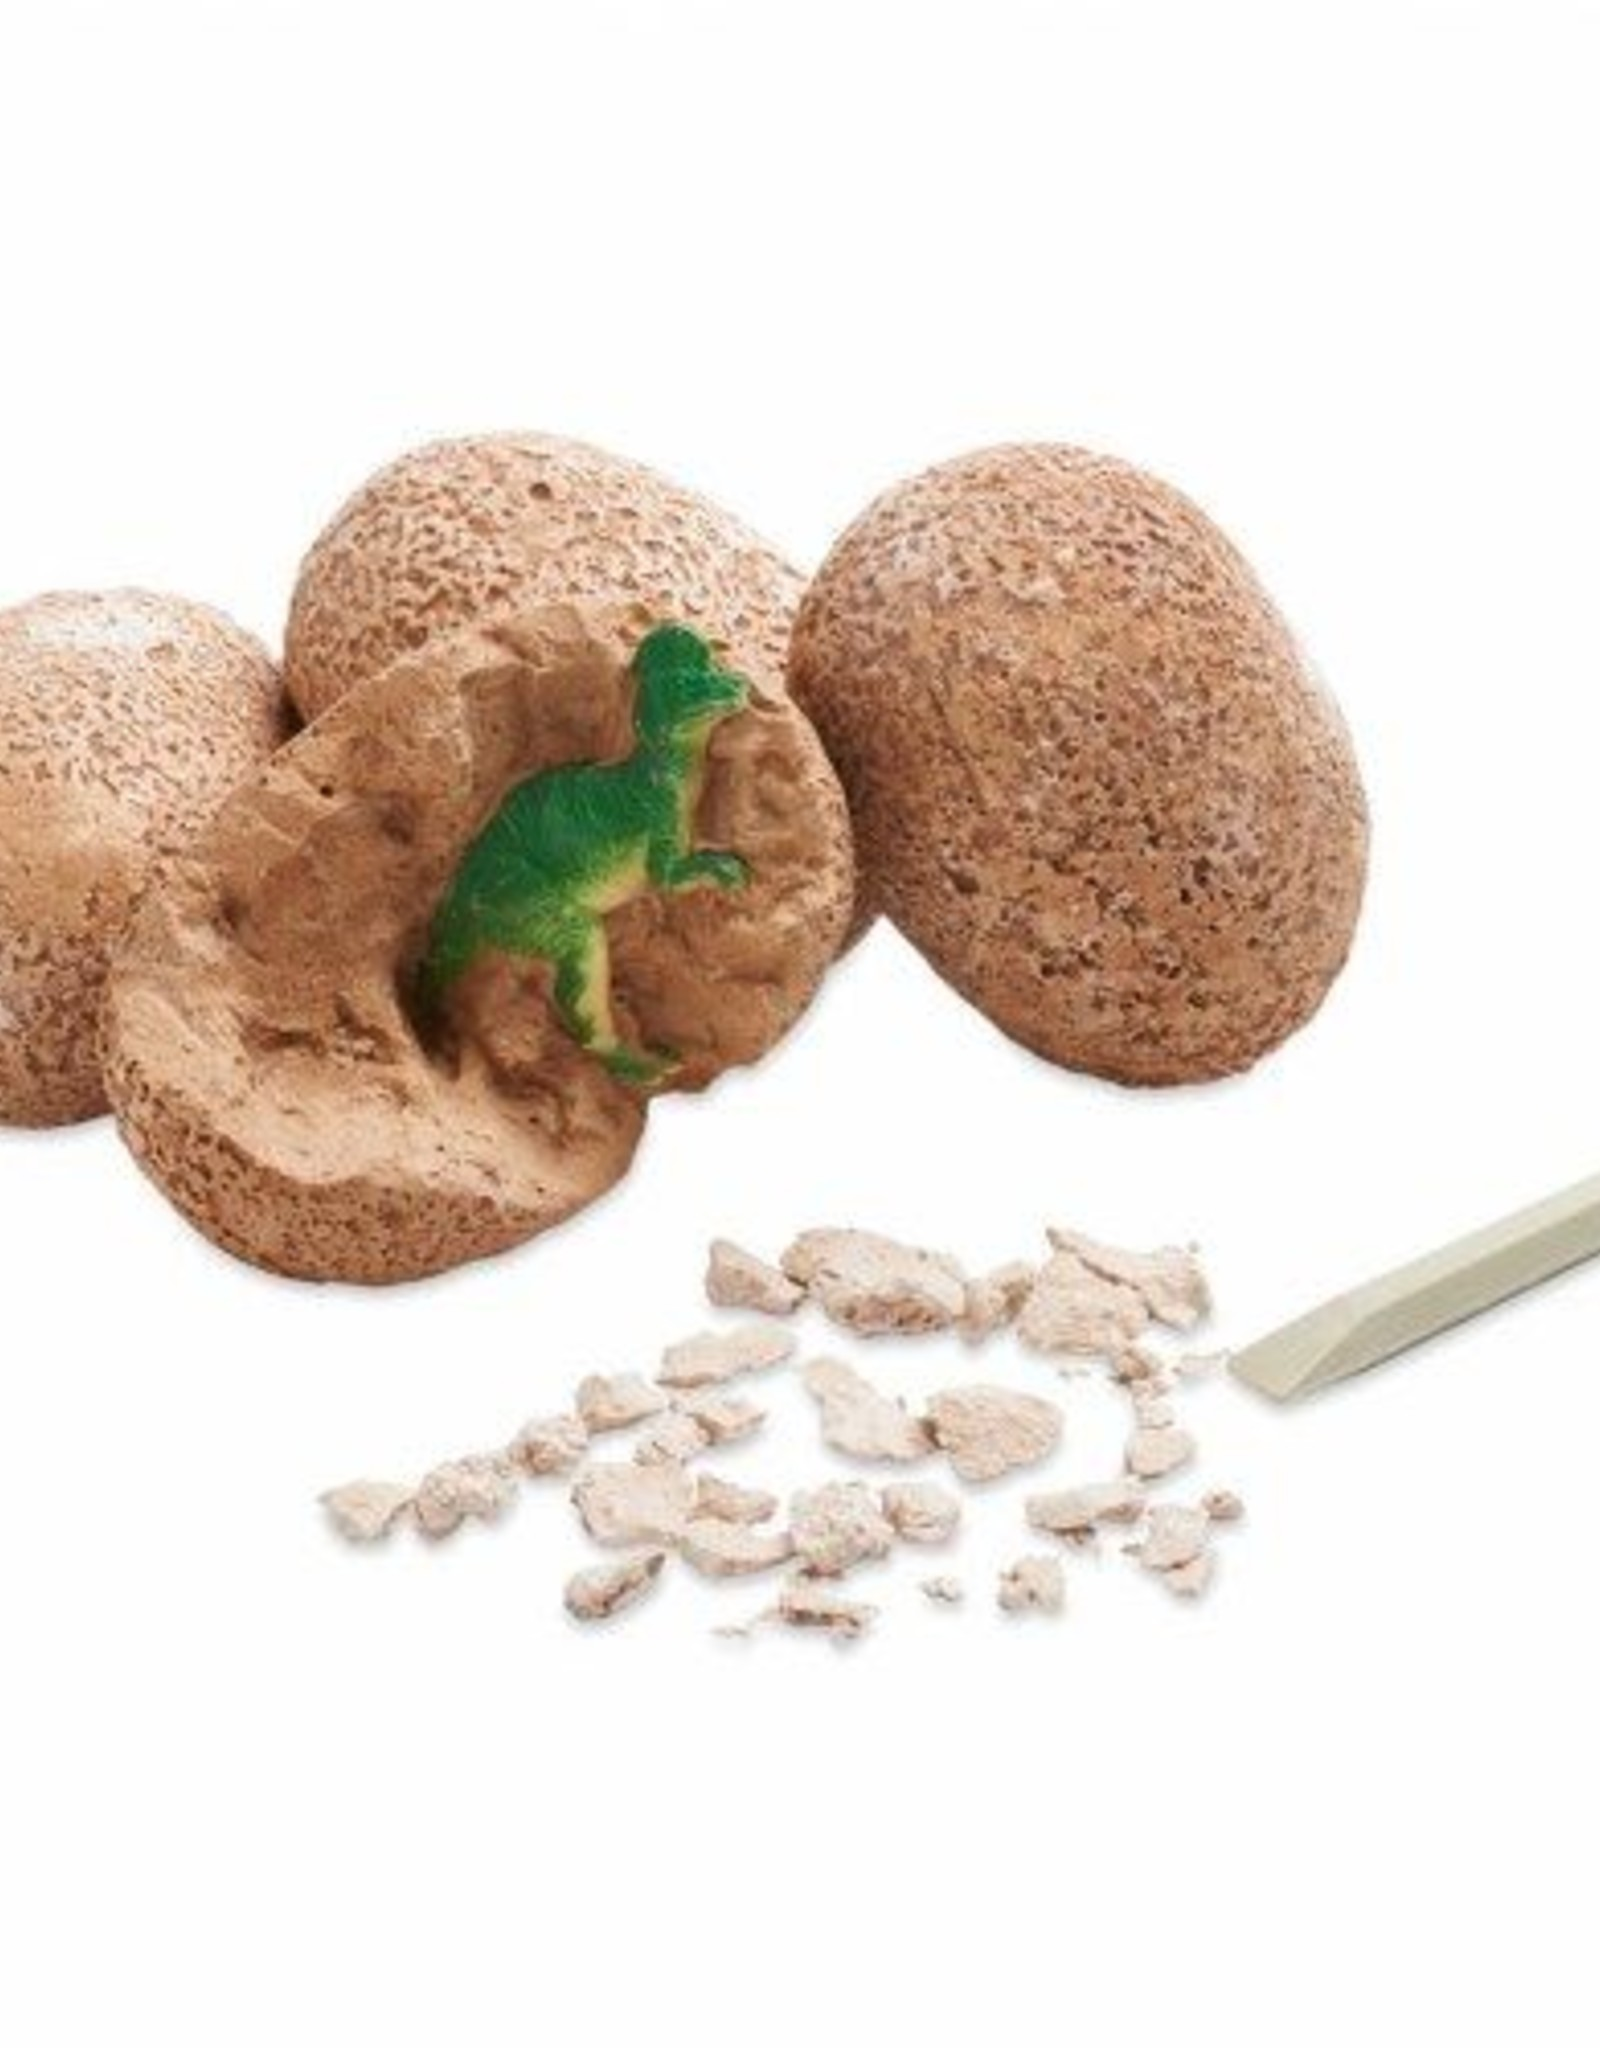 Mindware DIG IT UP! DINOSAUR EGGS